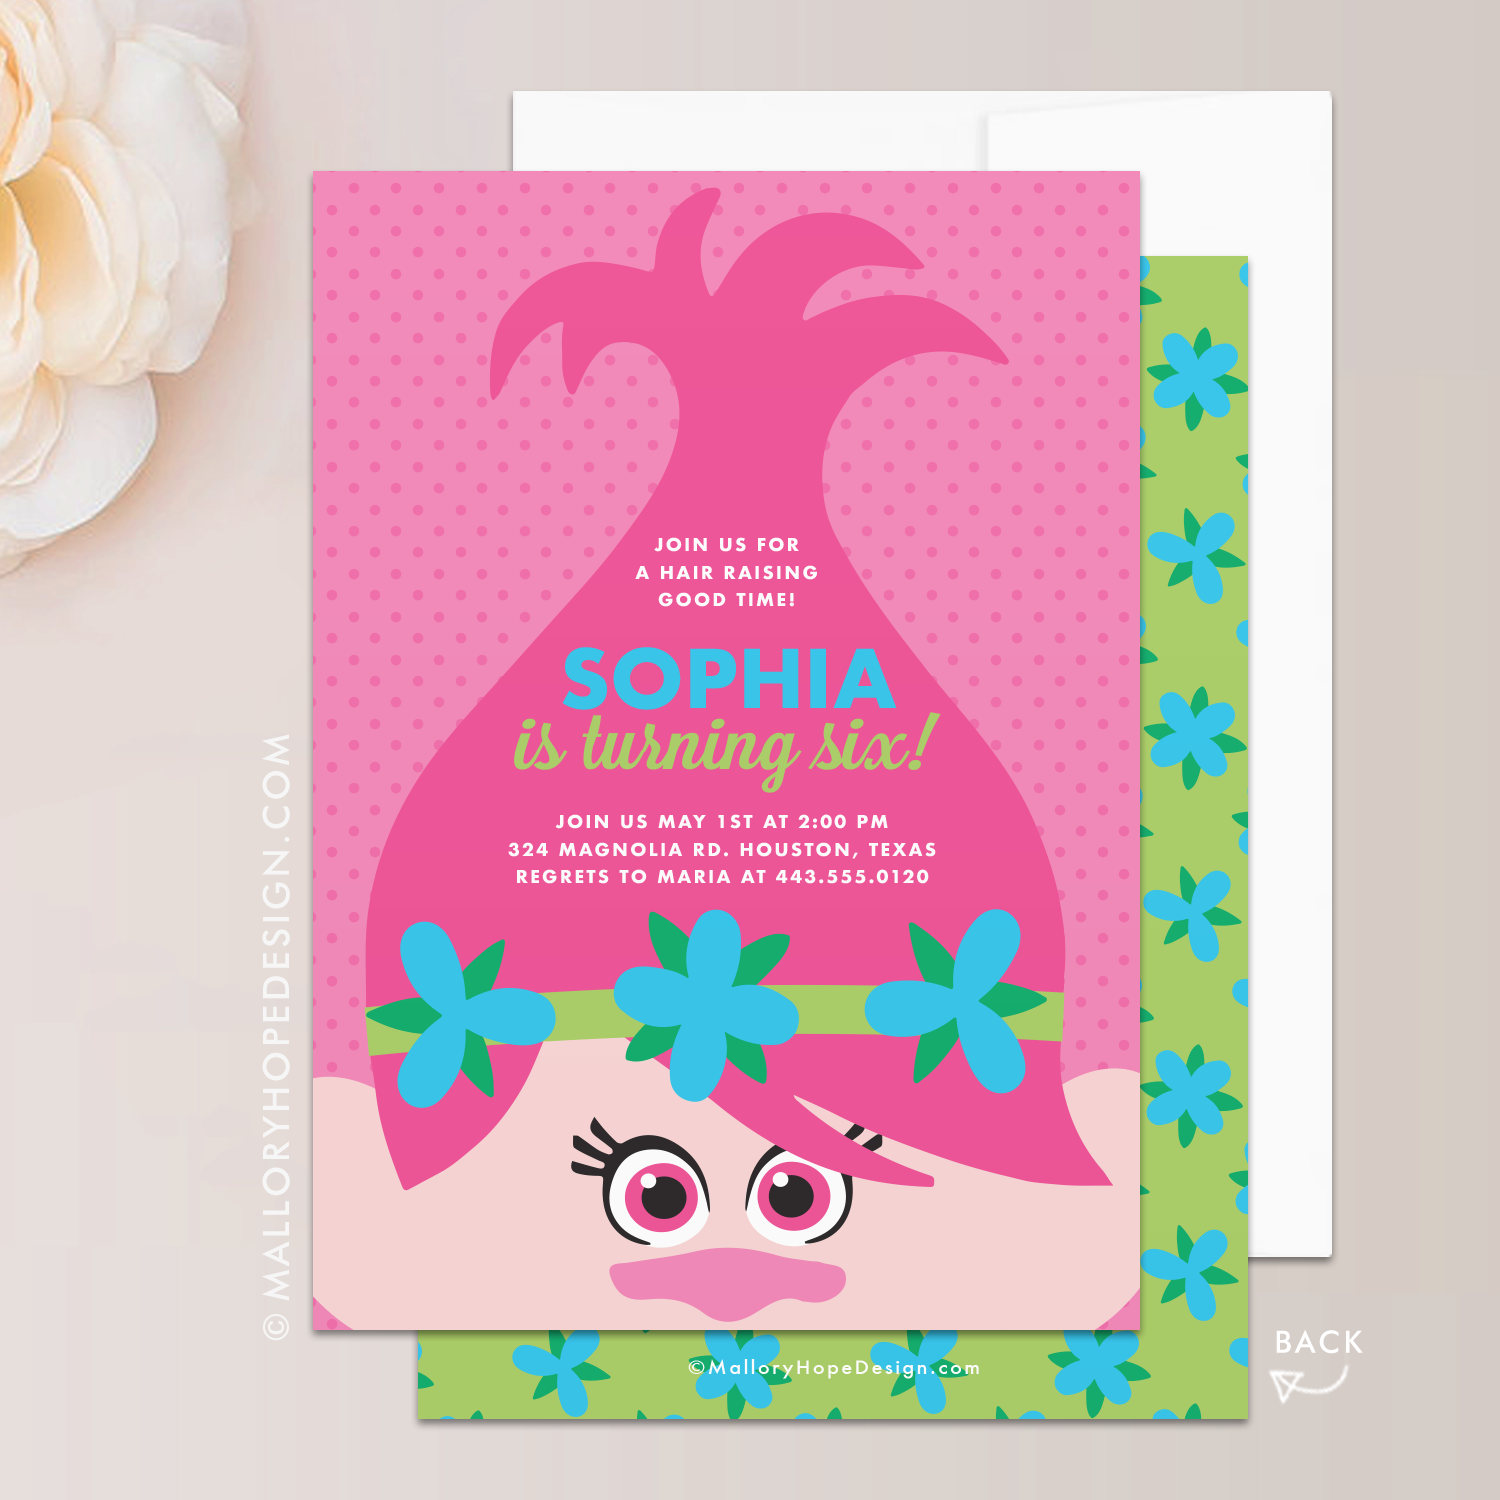 These Peek A Boo Poppy Invitations From Mallory Hope Design Are So Cute